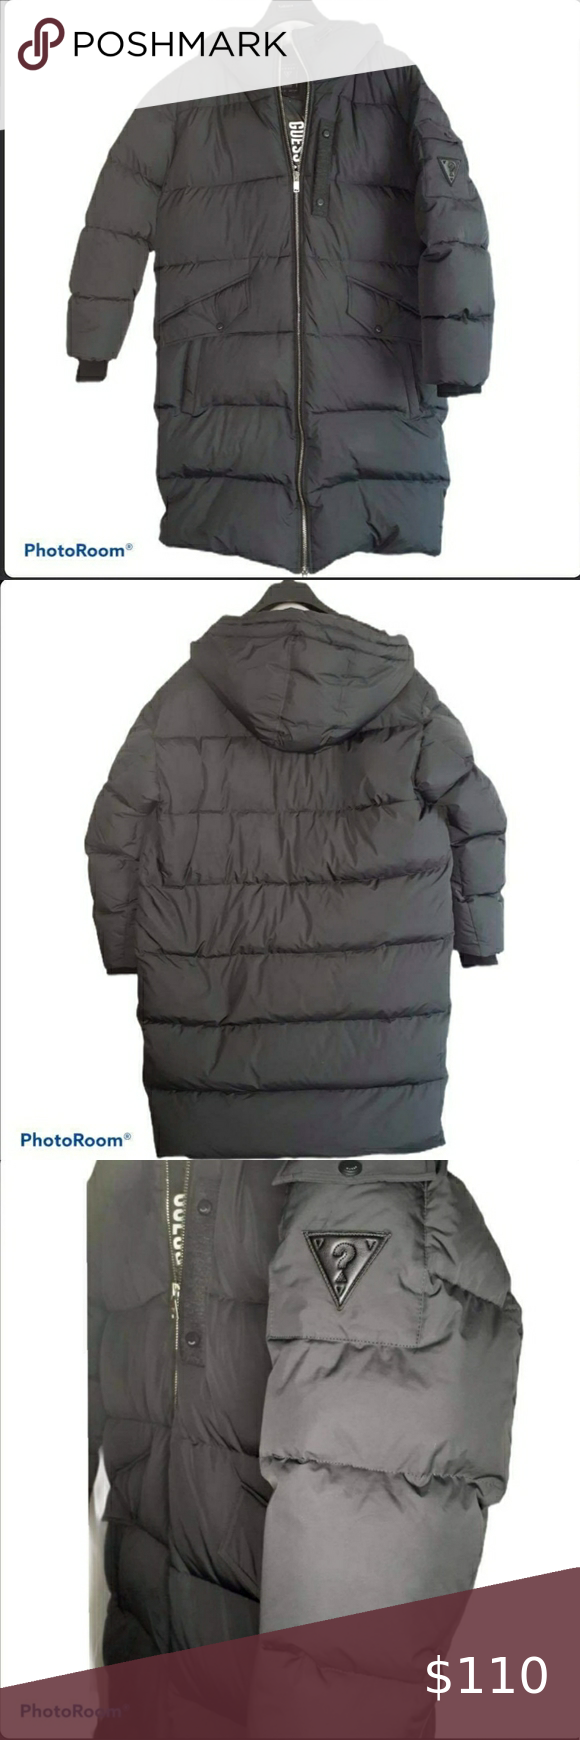 Guess Black Long Puffer Jacket Guess Black Long Puffer Jacket Size L Made In Vietnam Unisex Smoke Free Home And Pets Jackets Clothes Design Puffer Jackets [ 1740 x 580 Pixel ]